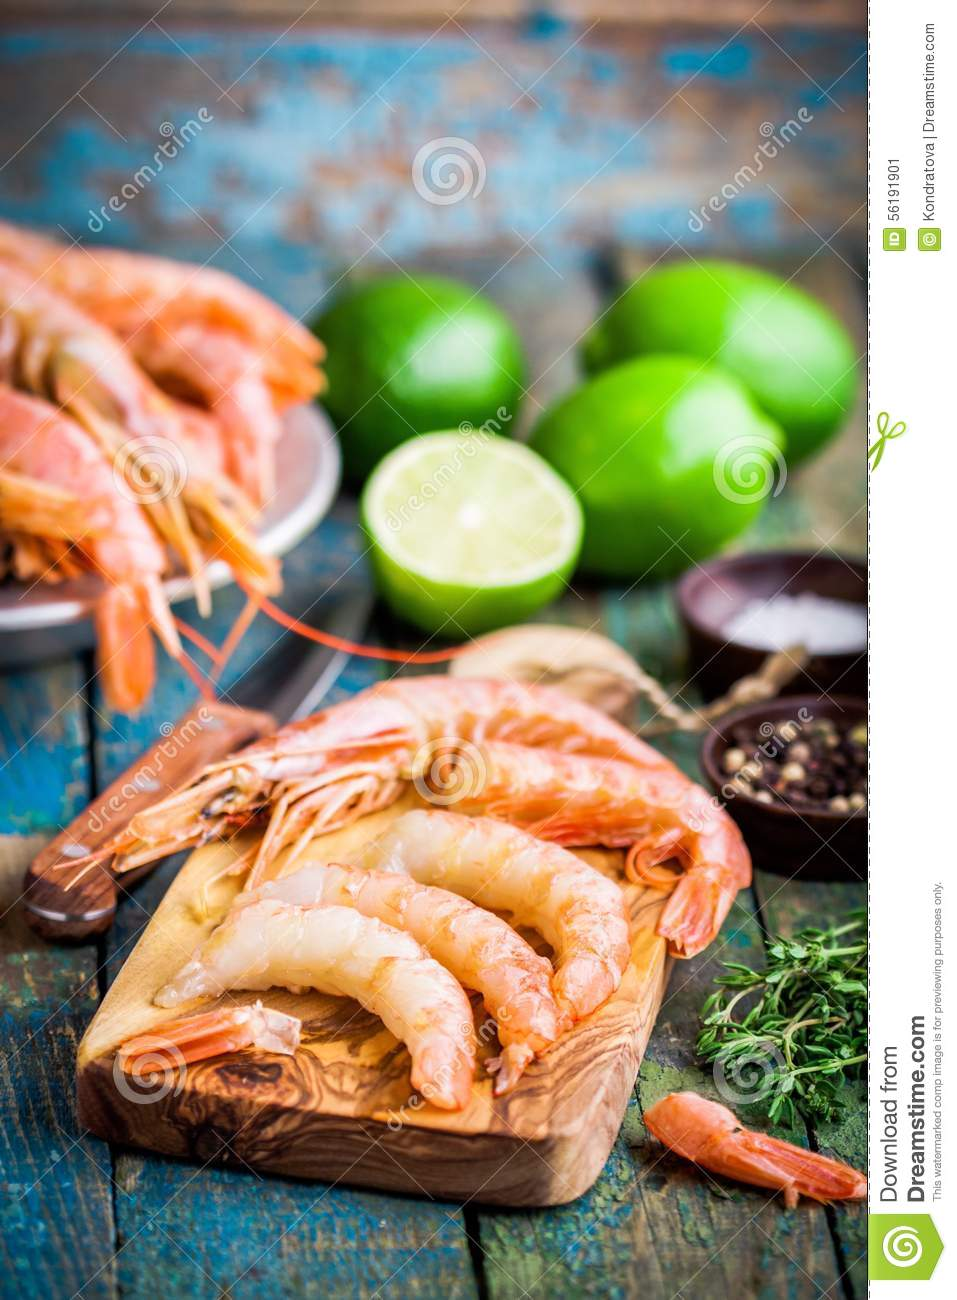 Peeled raw prawns on a wooden cutting board with salt, pepper, lime